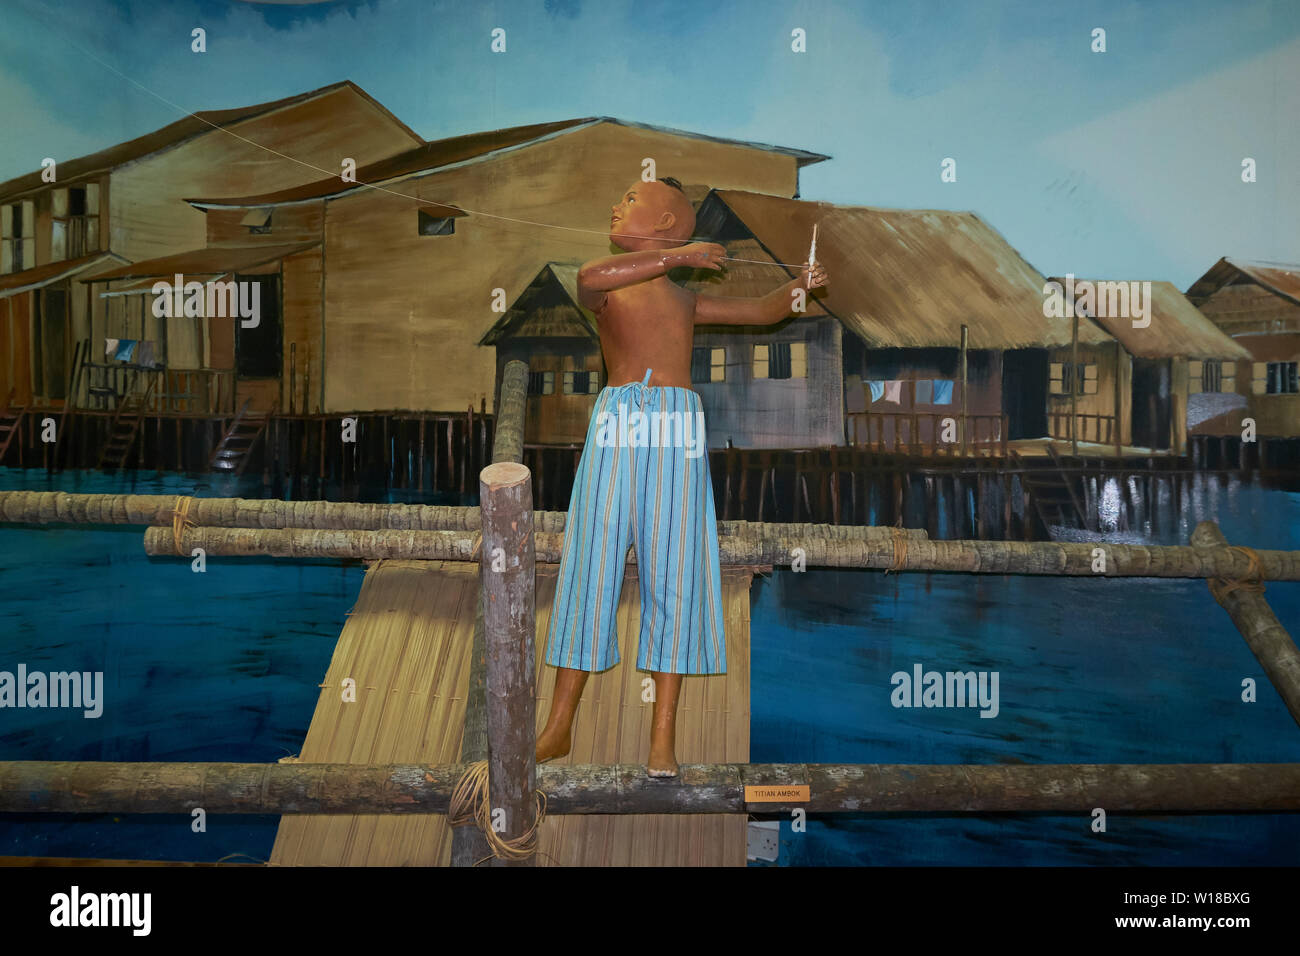 Diorama of a Kampong boy flying a kite in the Malay Technology Museum in Bandar Seri Begawan, Brunei - Stock Image